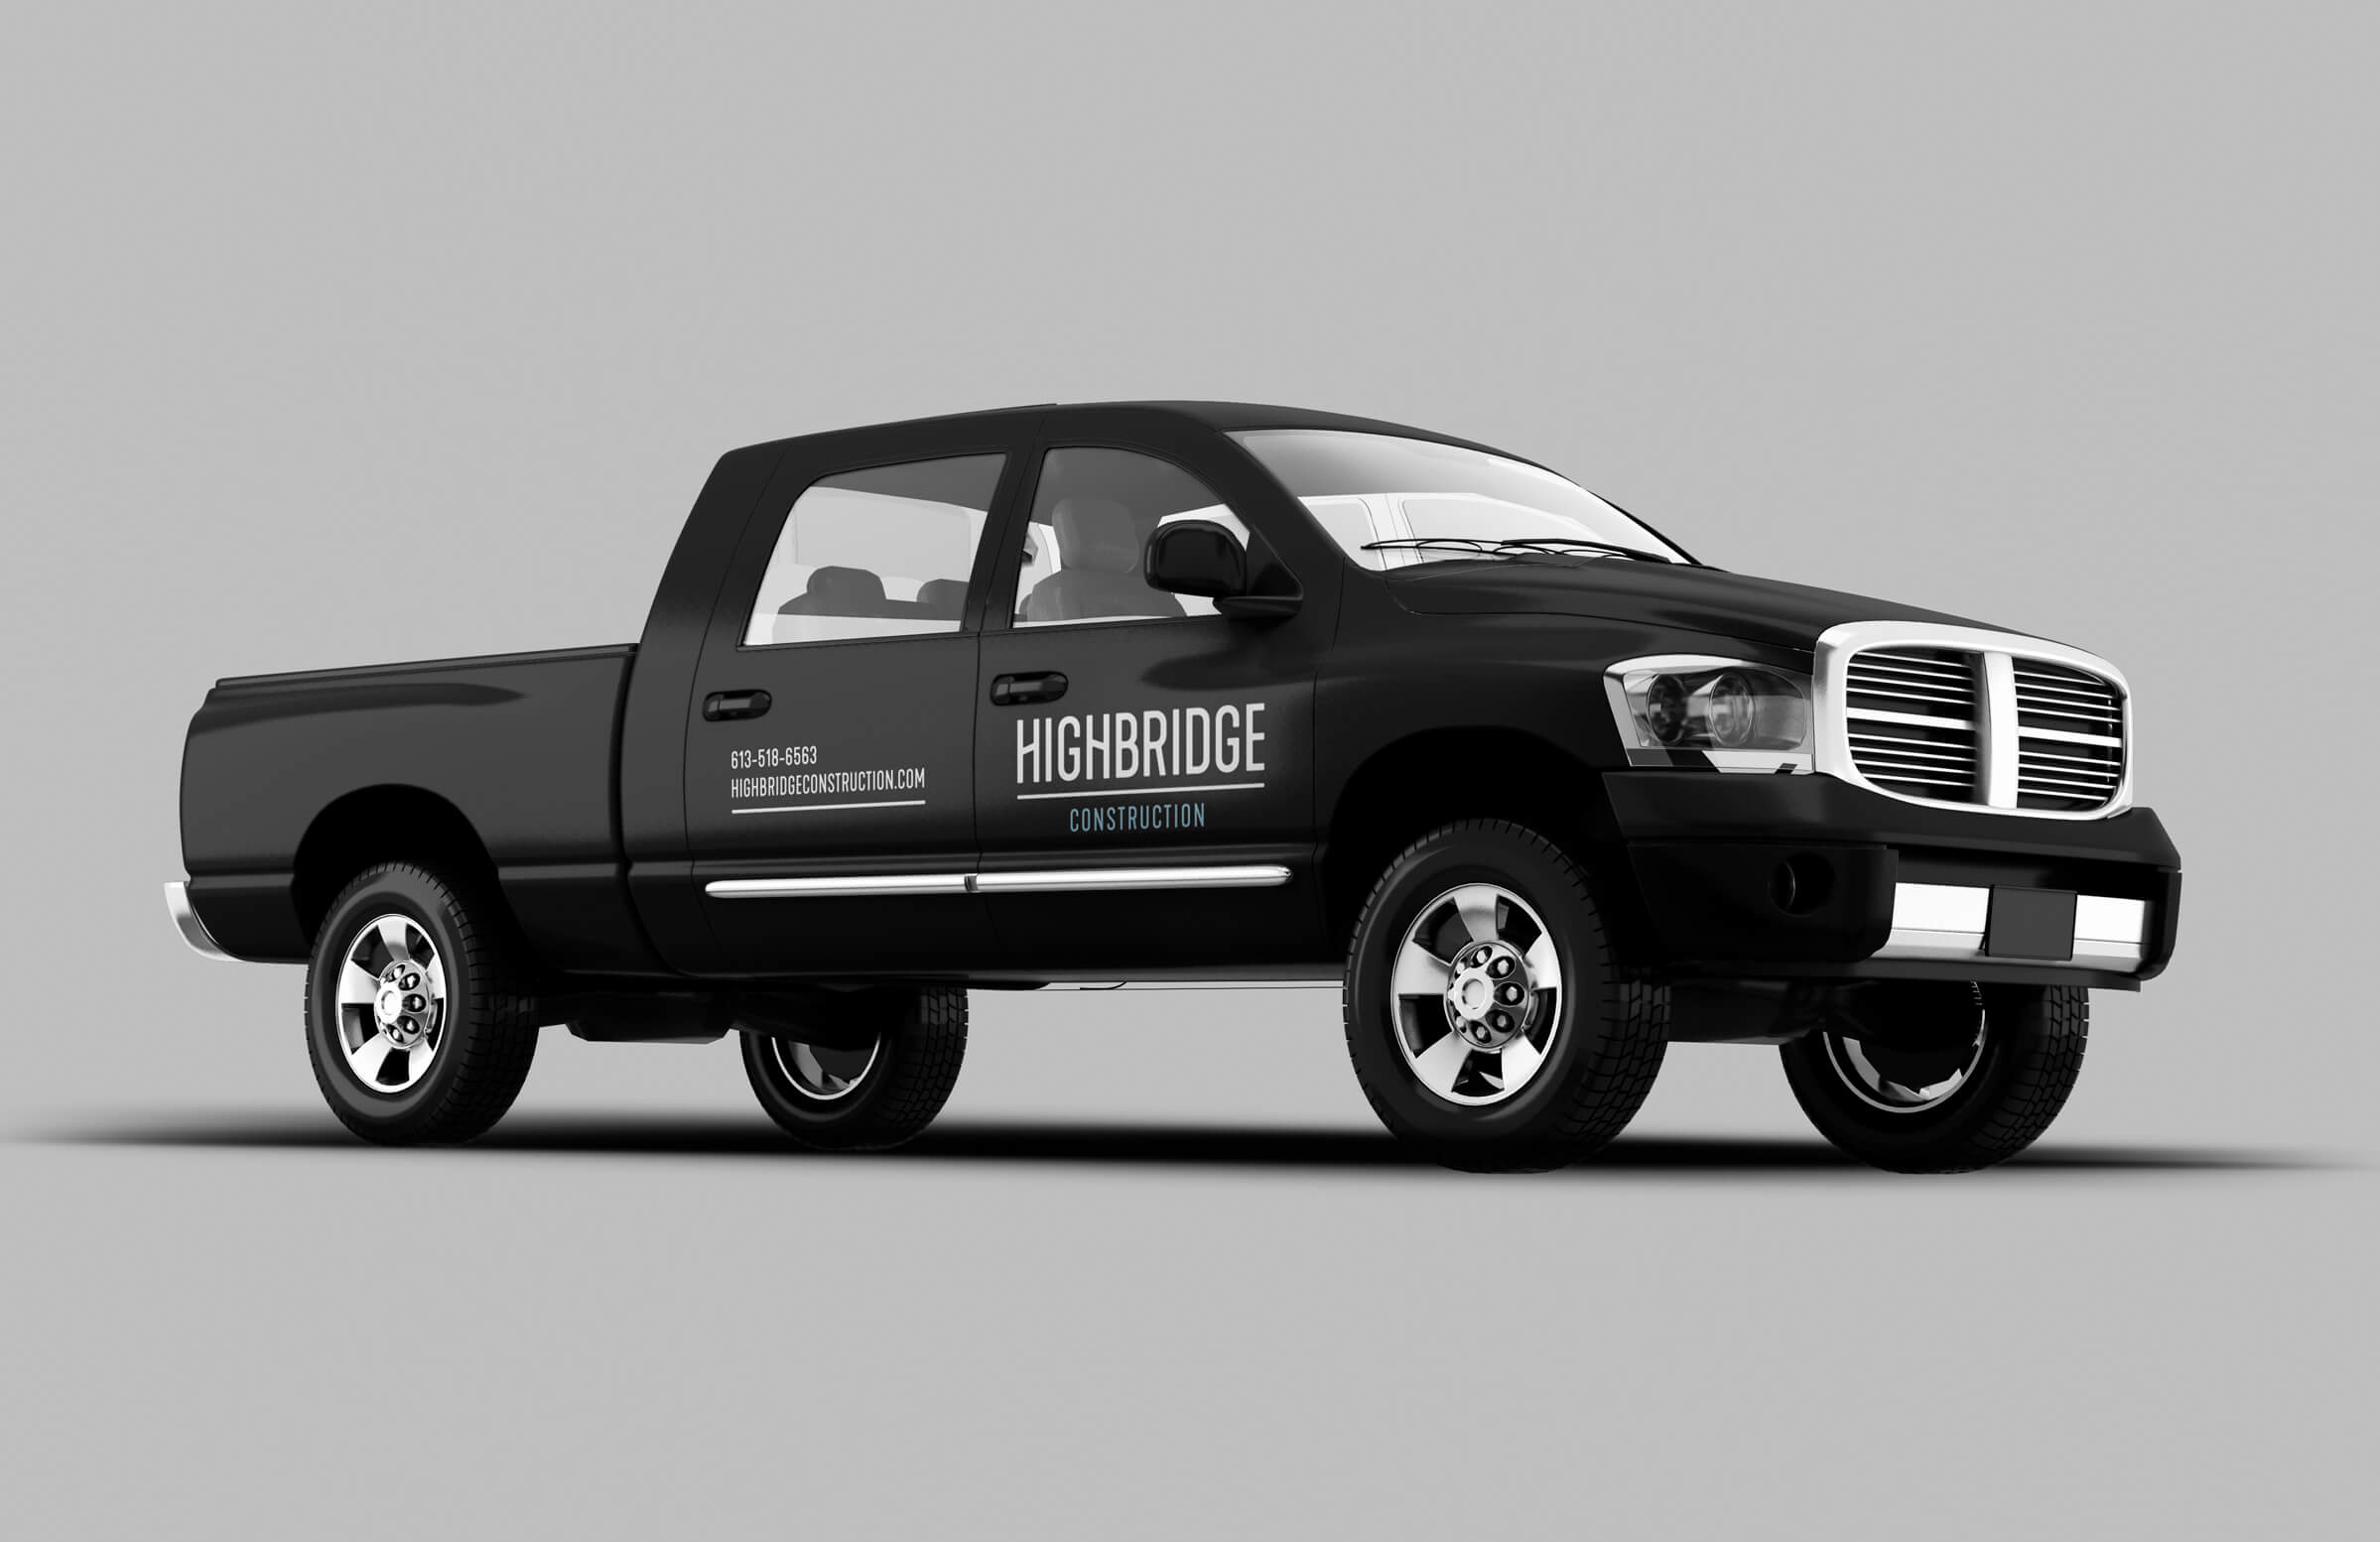 Highbridge Construction vehicle wrap for Ottawa-based general contractor by graphic designer idApostle